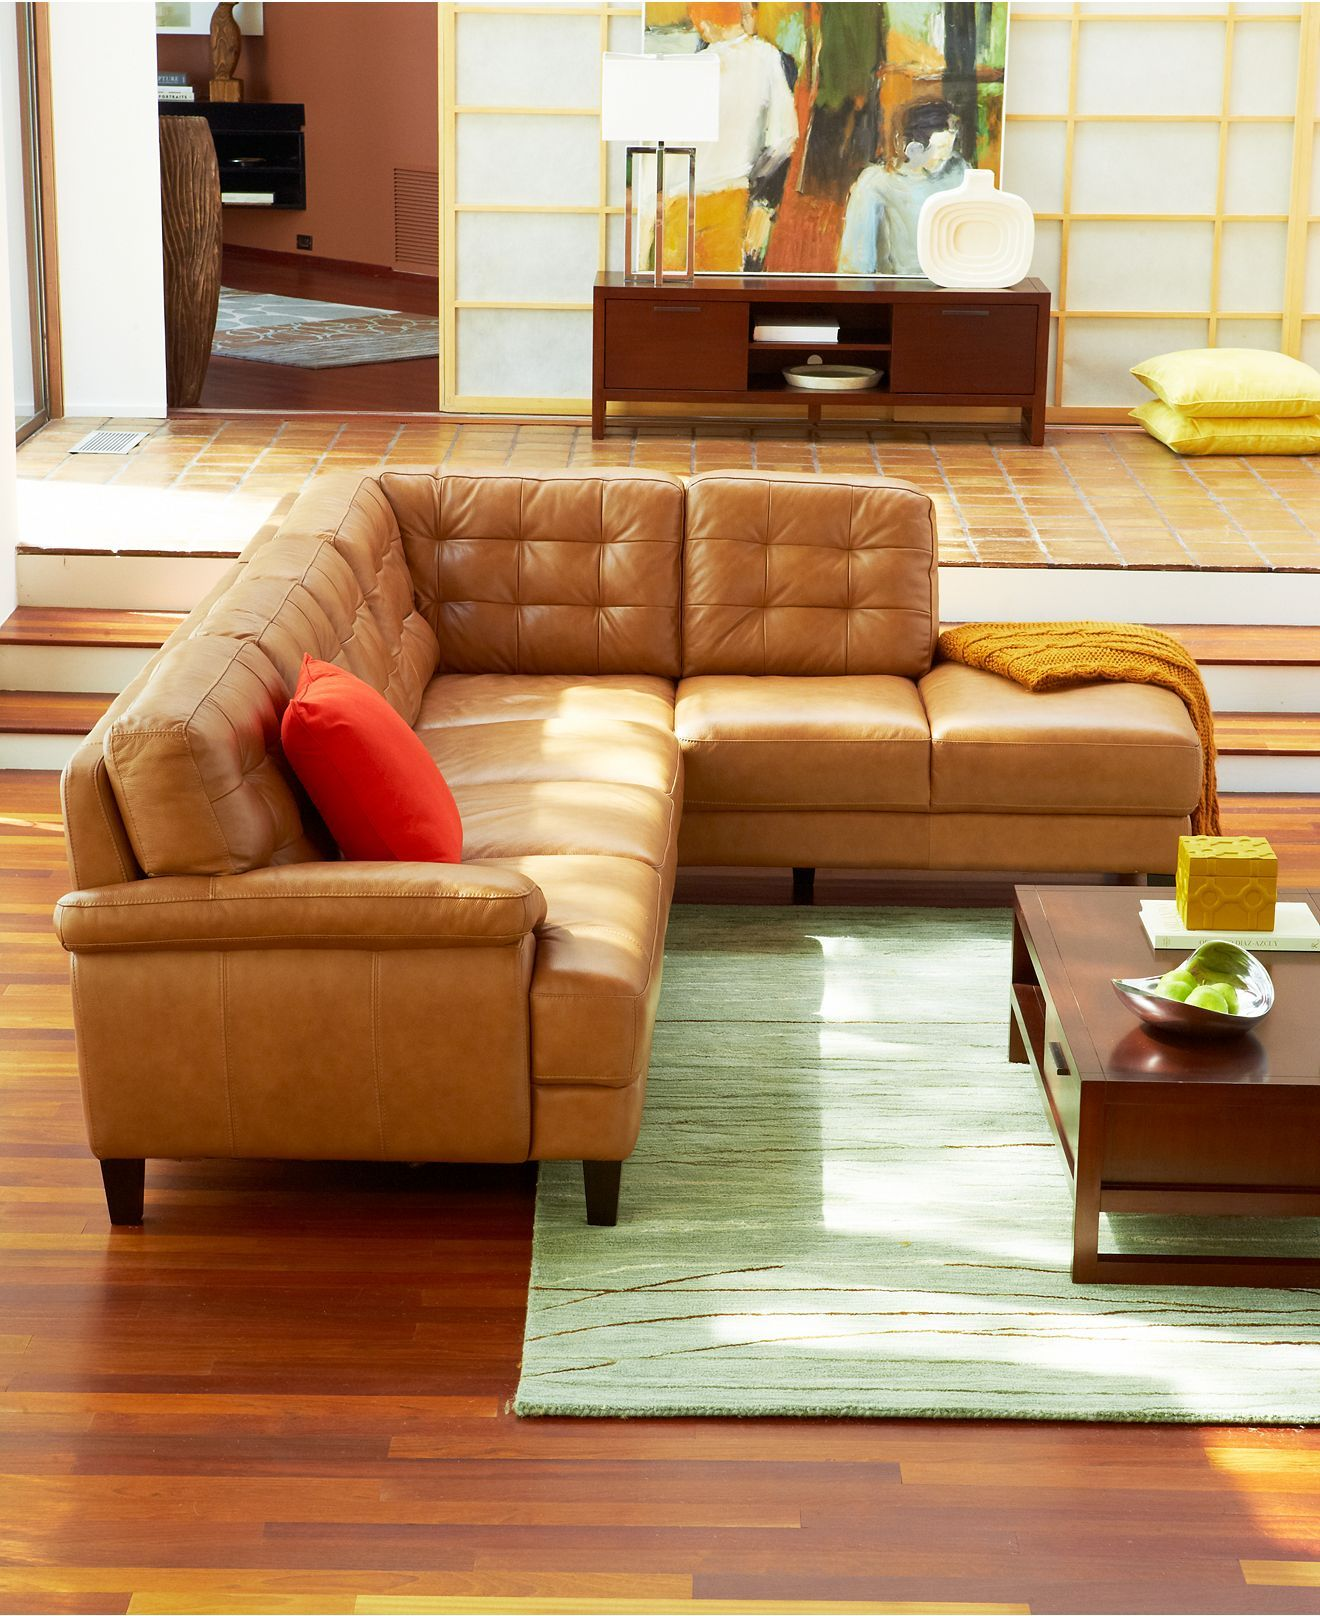 camel tufted sofa chaise jackson furniture sectional sofas gina living room modular couch on macy 39s decorating